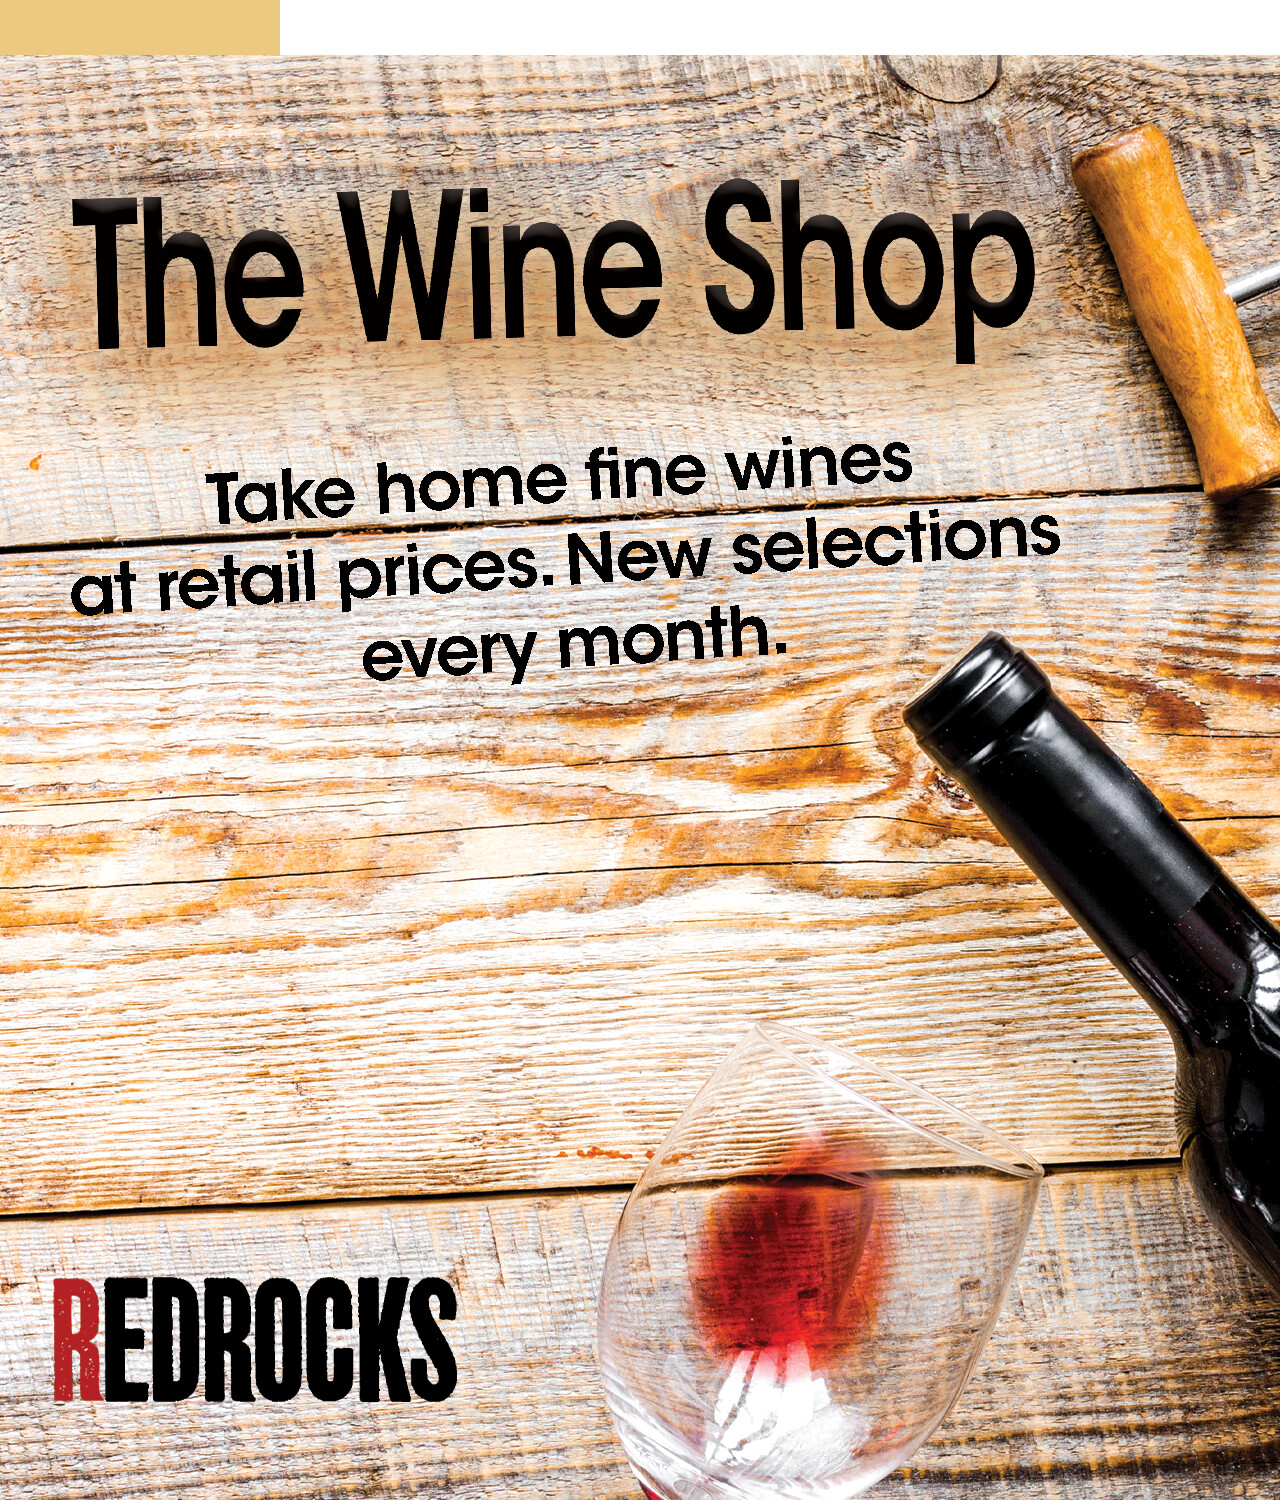 The Wine Shop